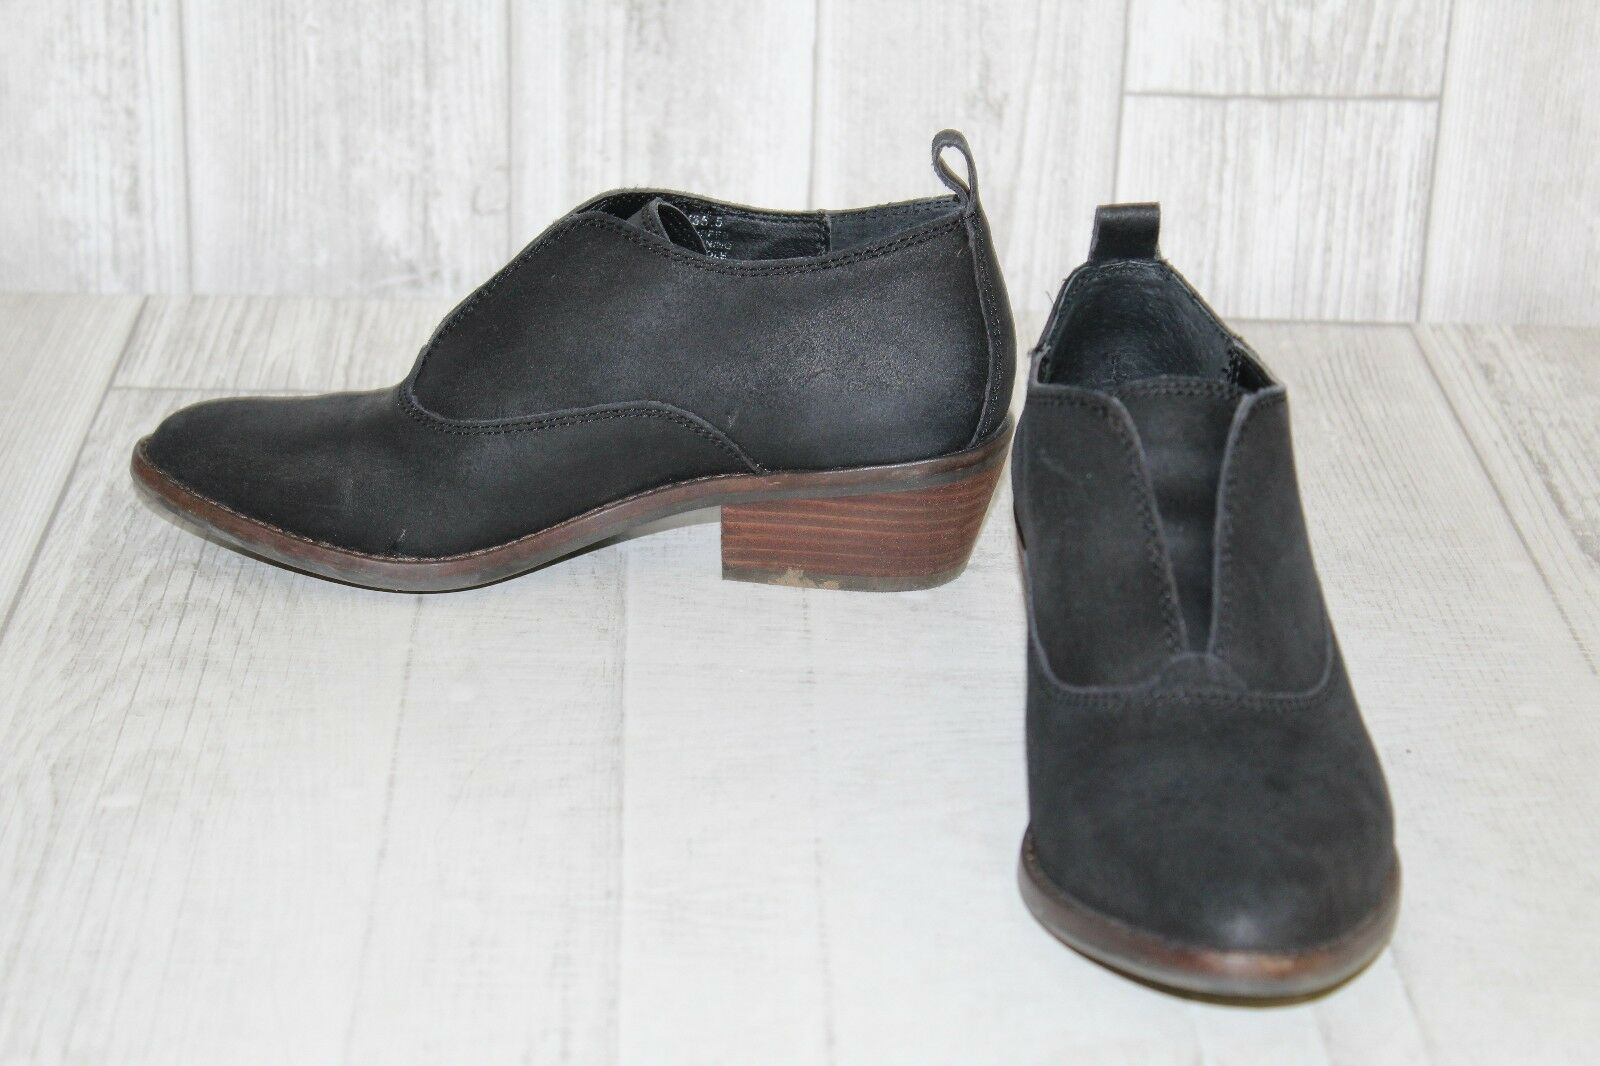 fdf843e29e4 Lucky Brand Fimberly Booties - Women s Size 5.5 M M M Black 29ee5a ...